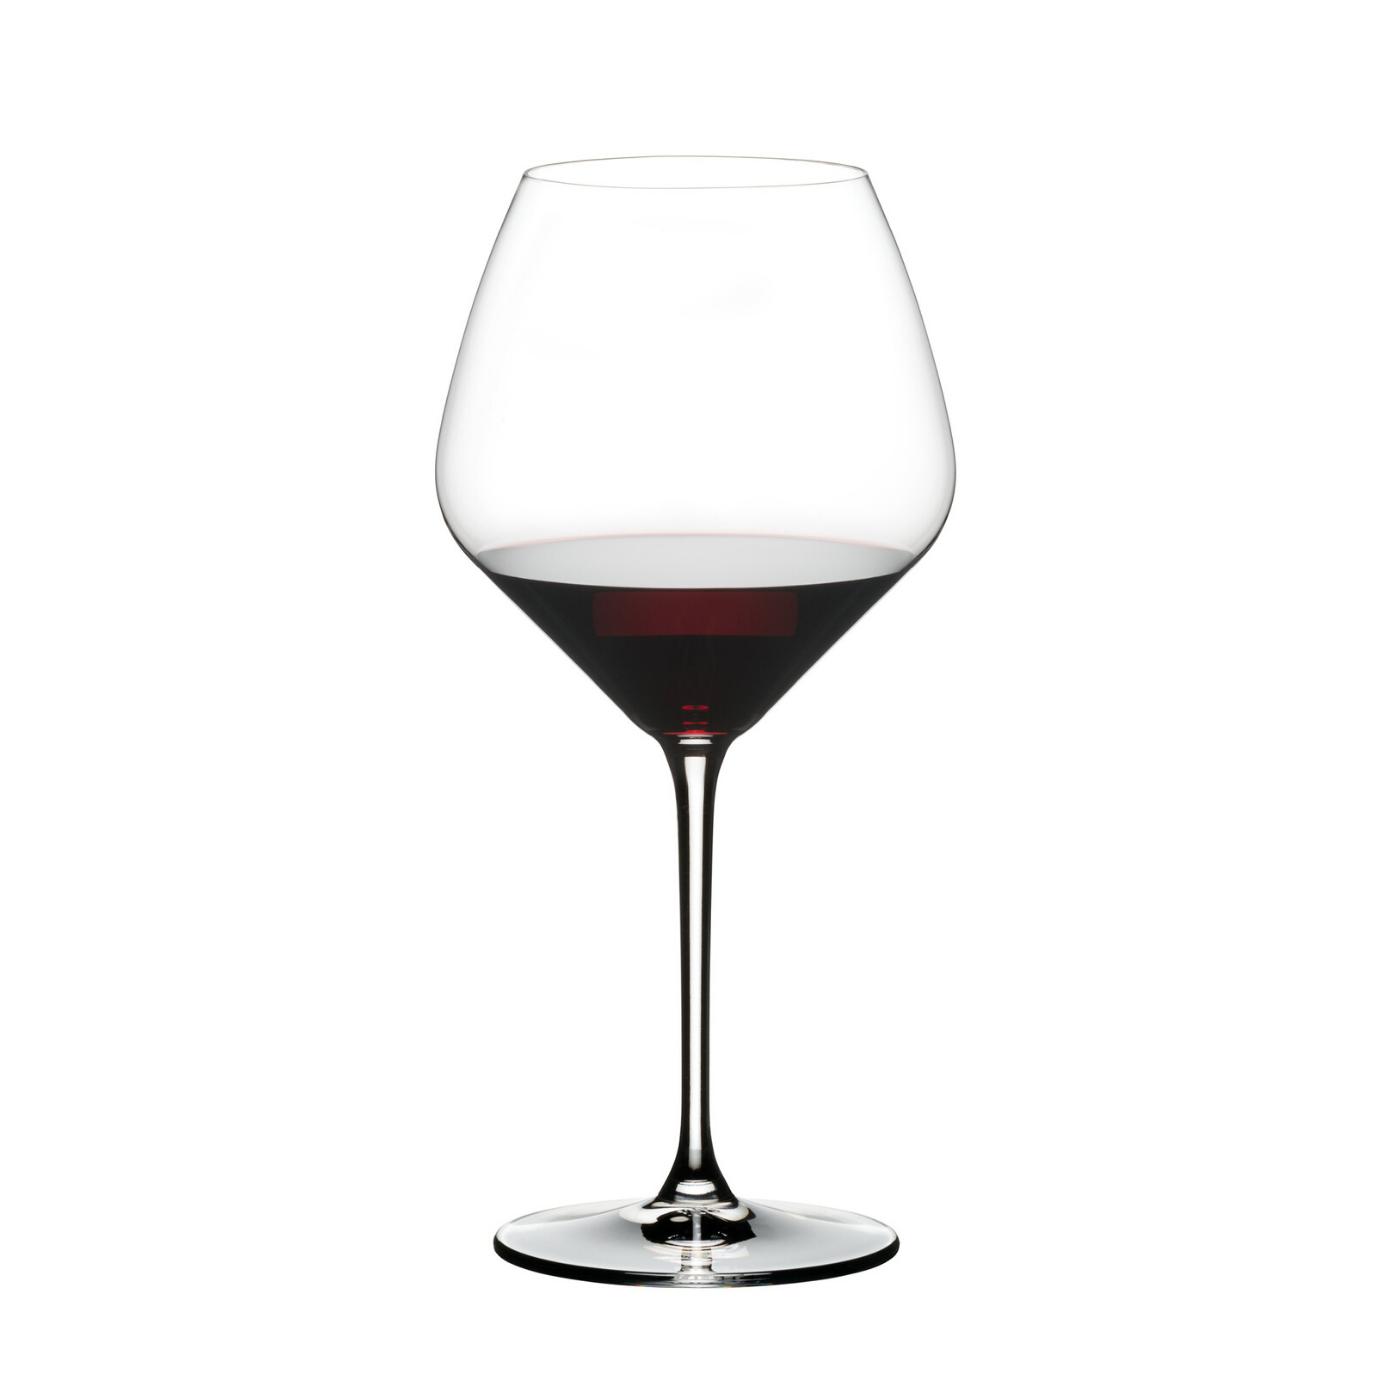 Riedel Extreme Pinot Noir Glasses (set of 2)